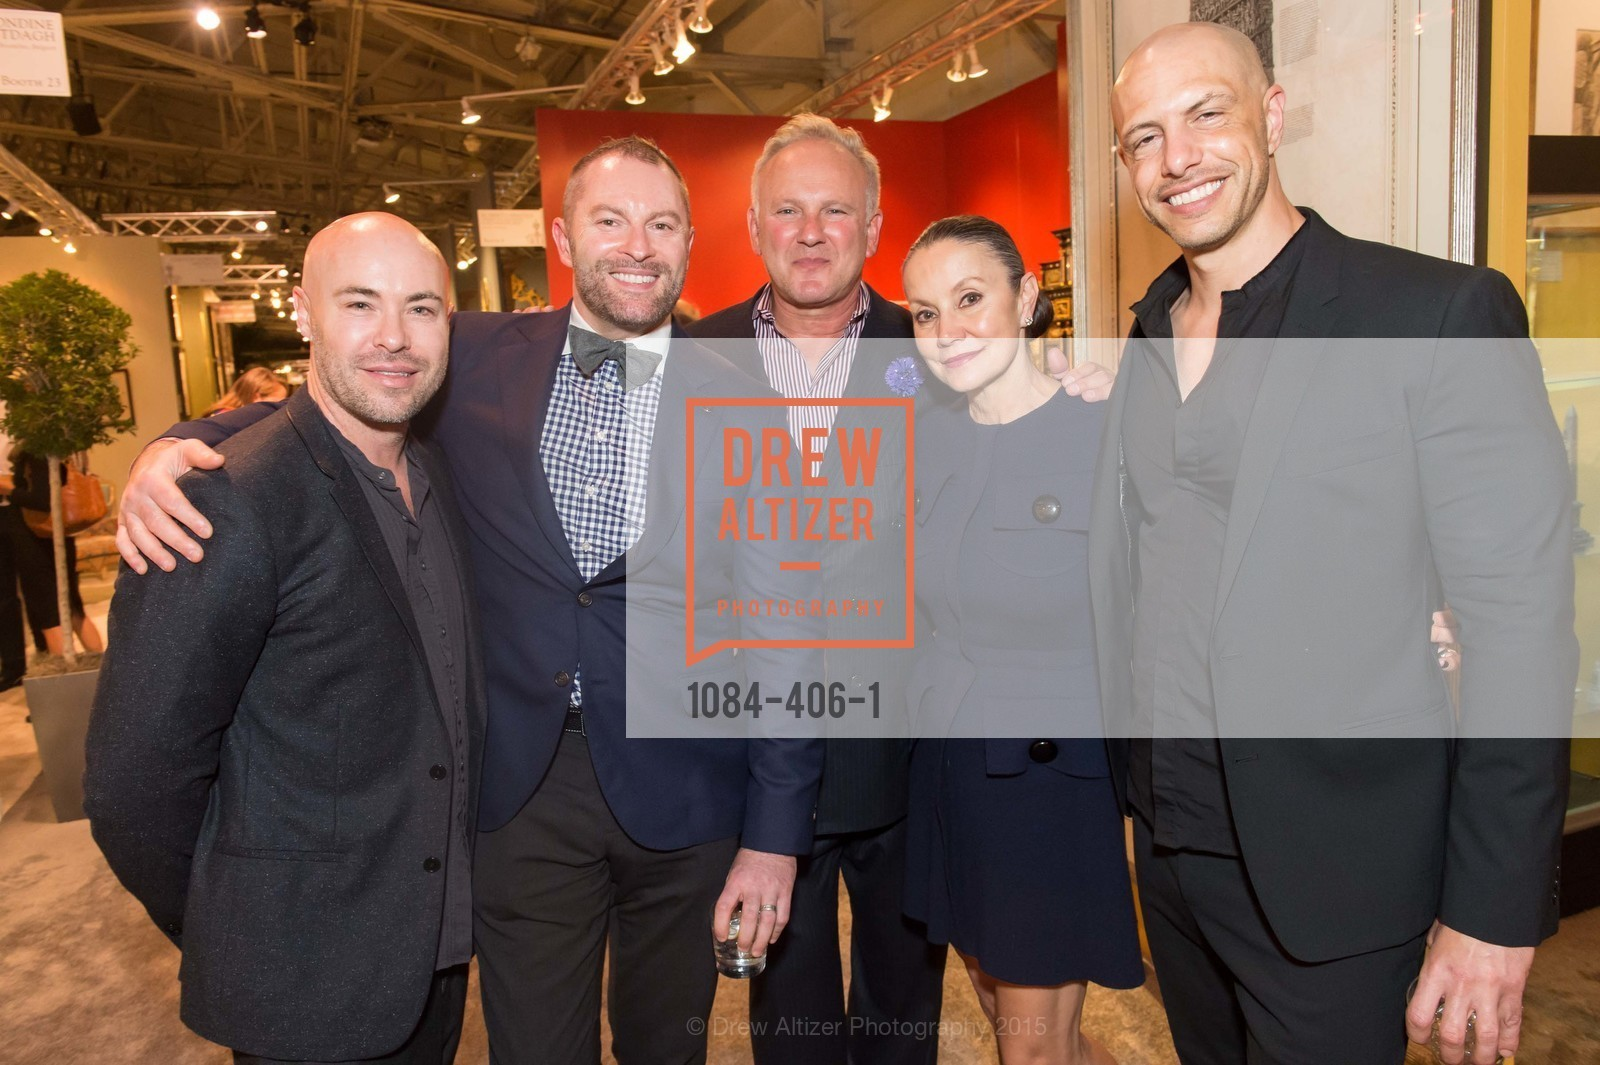 Darren Geis, Thierry Buissom, Brian Kessler, Carol Anne Warner, Jay Alton, The San Francisco Fall Antiques Show, Festival Pavilion, Fort Mason, October 21st, 2015,Drew Altizer, Drew Altizer Photography, full-service agency, private events, San Francisco photographer, photographer california